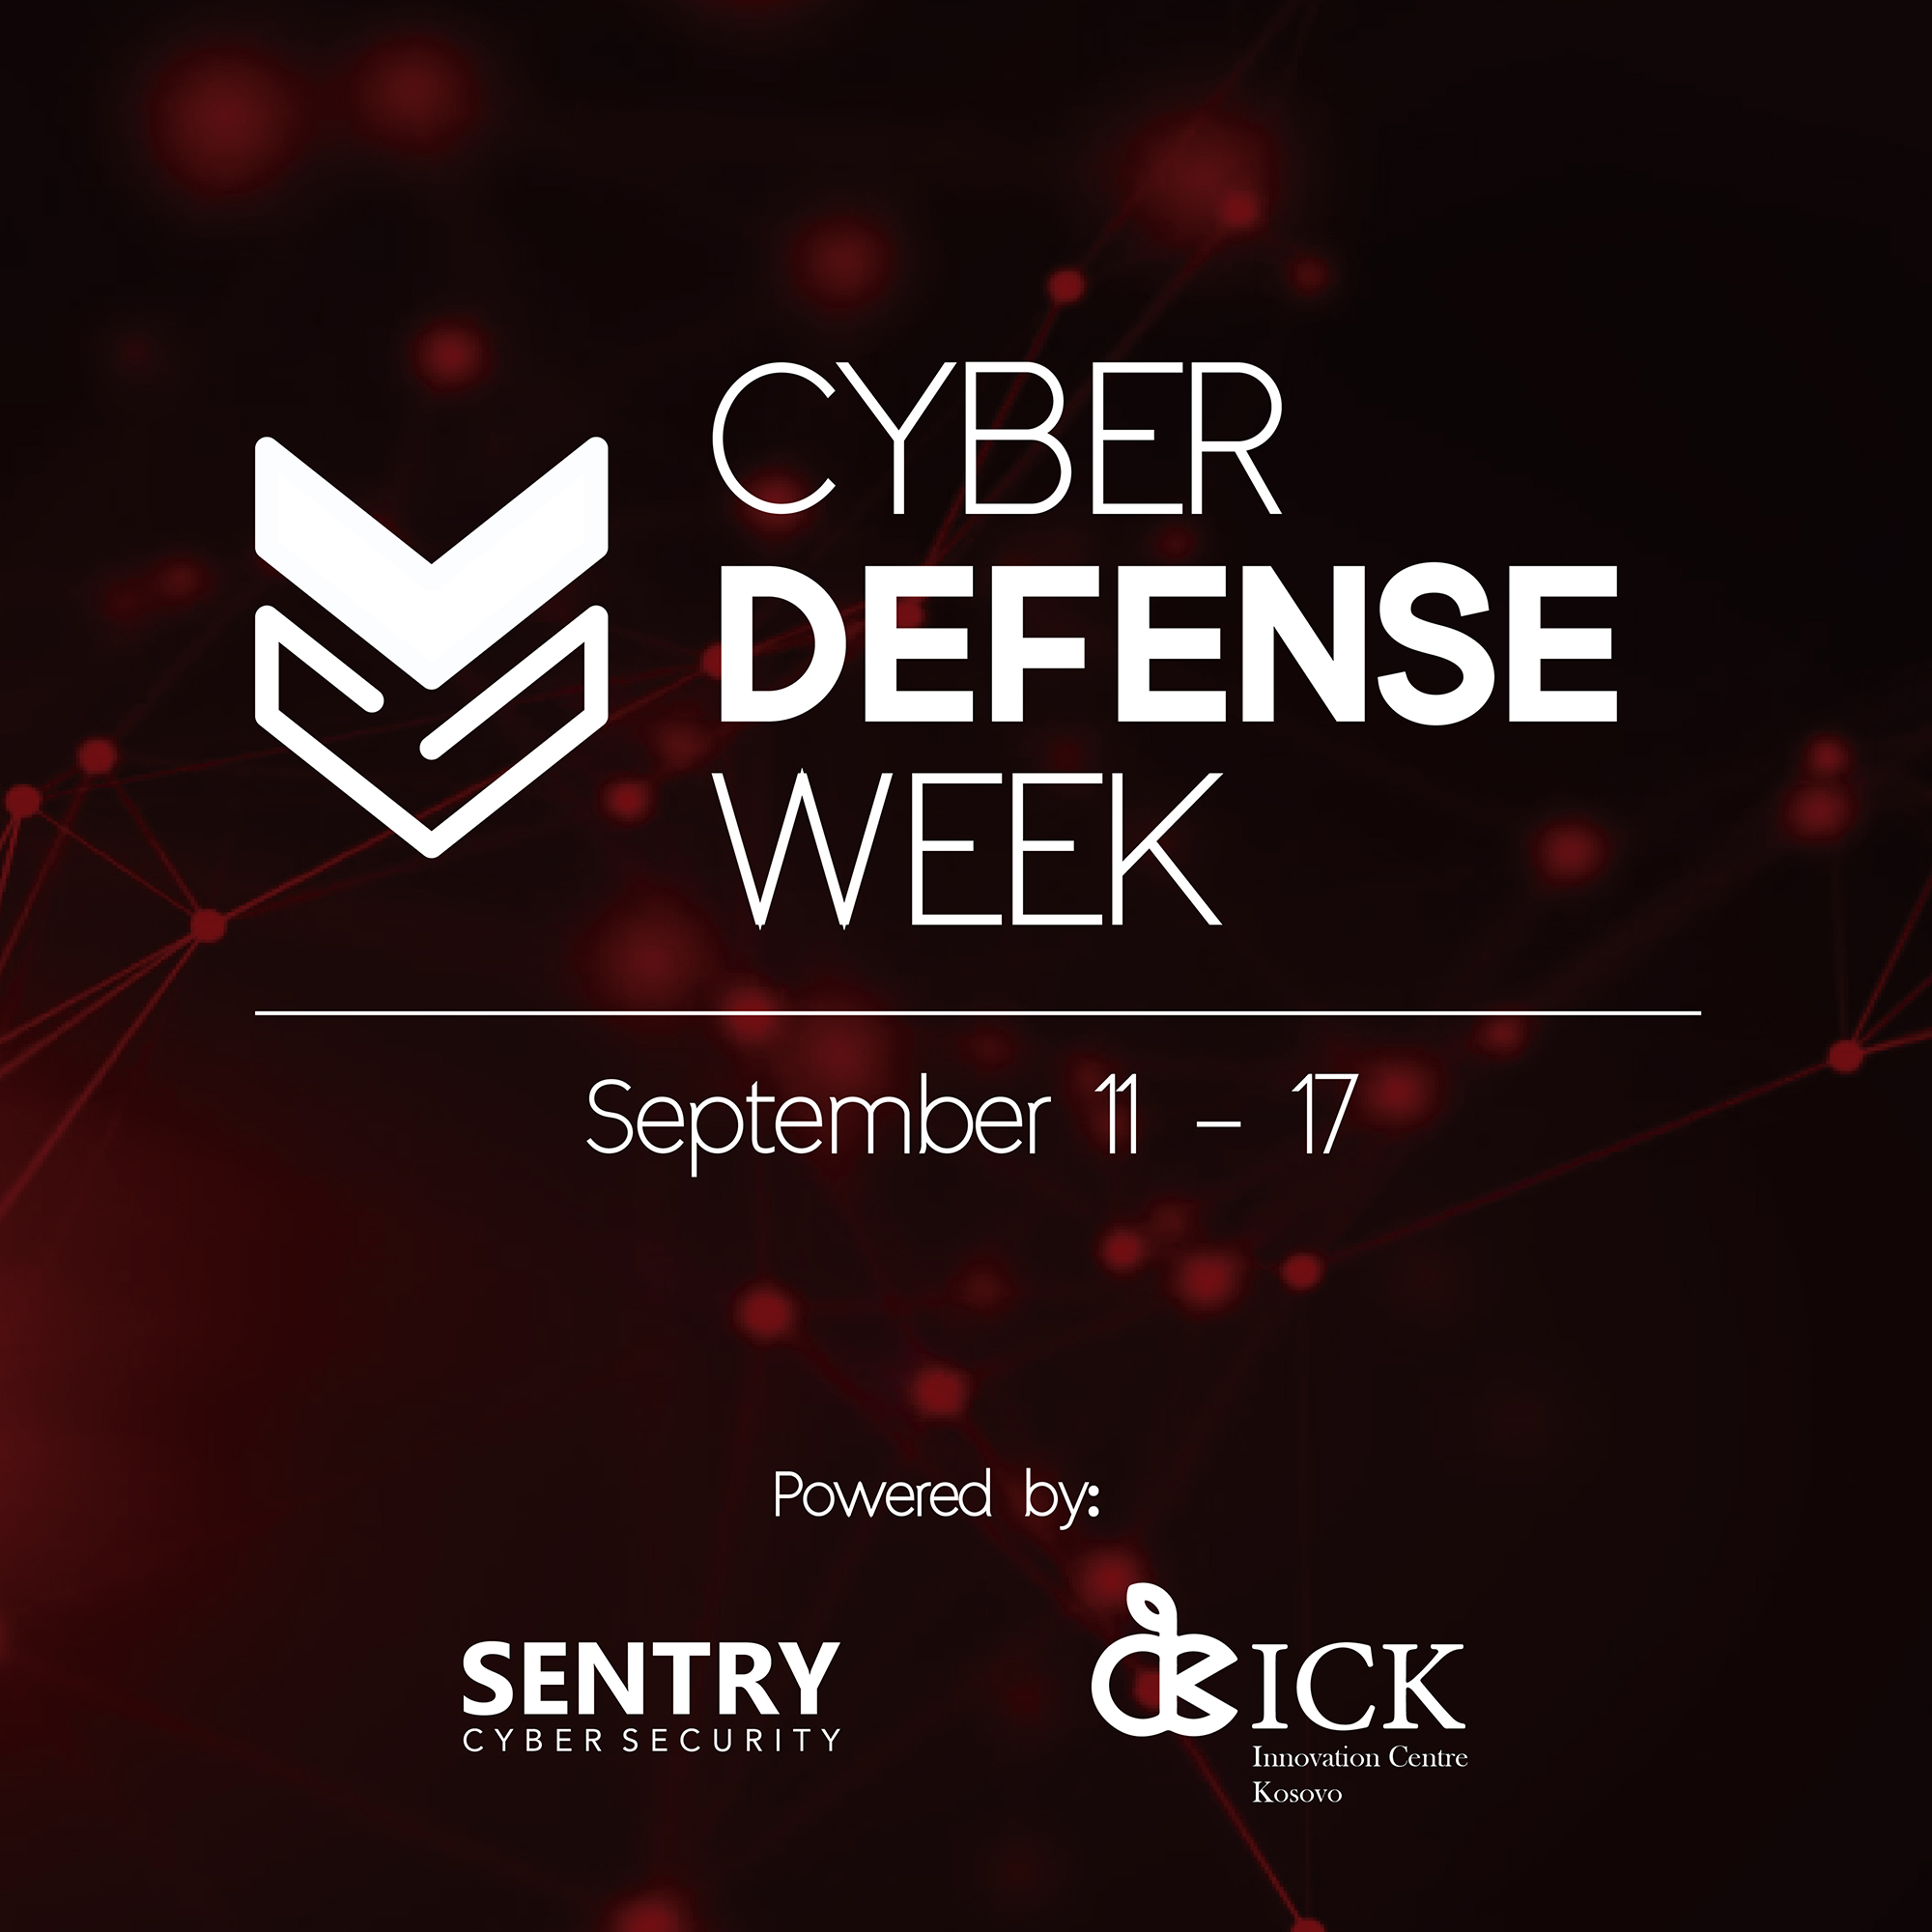 Cyber Defense Week